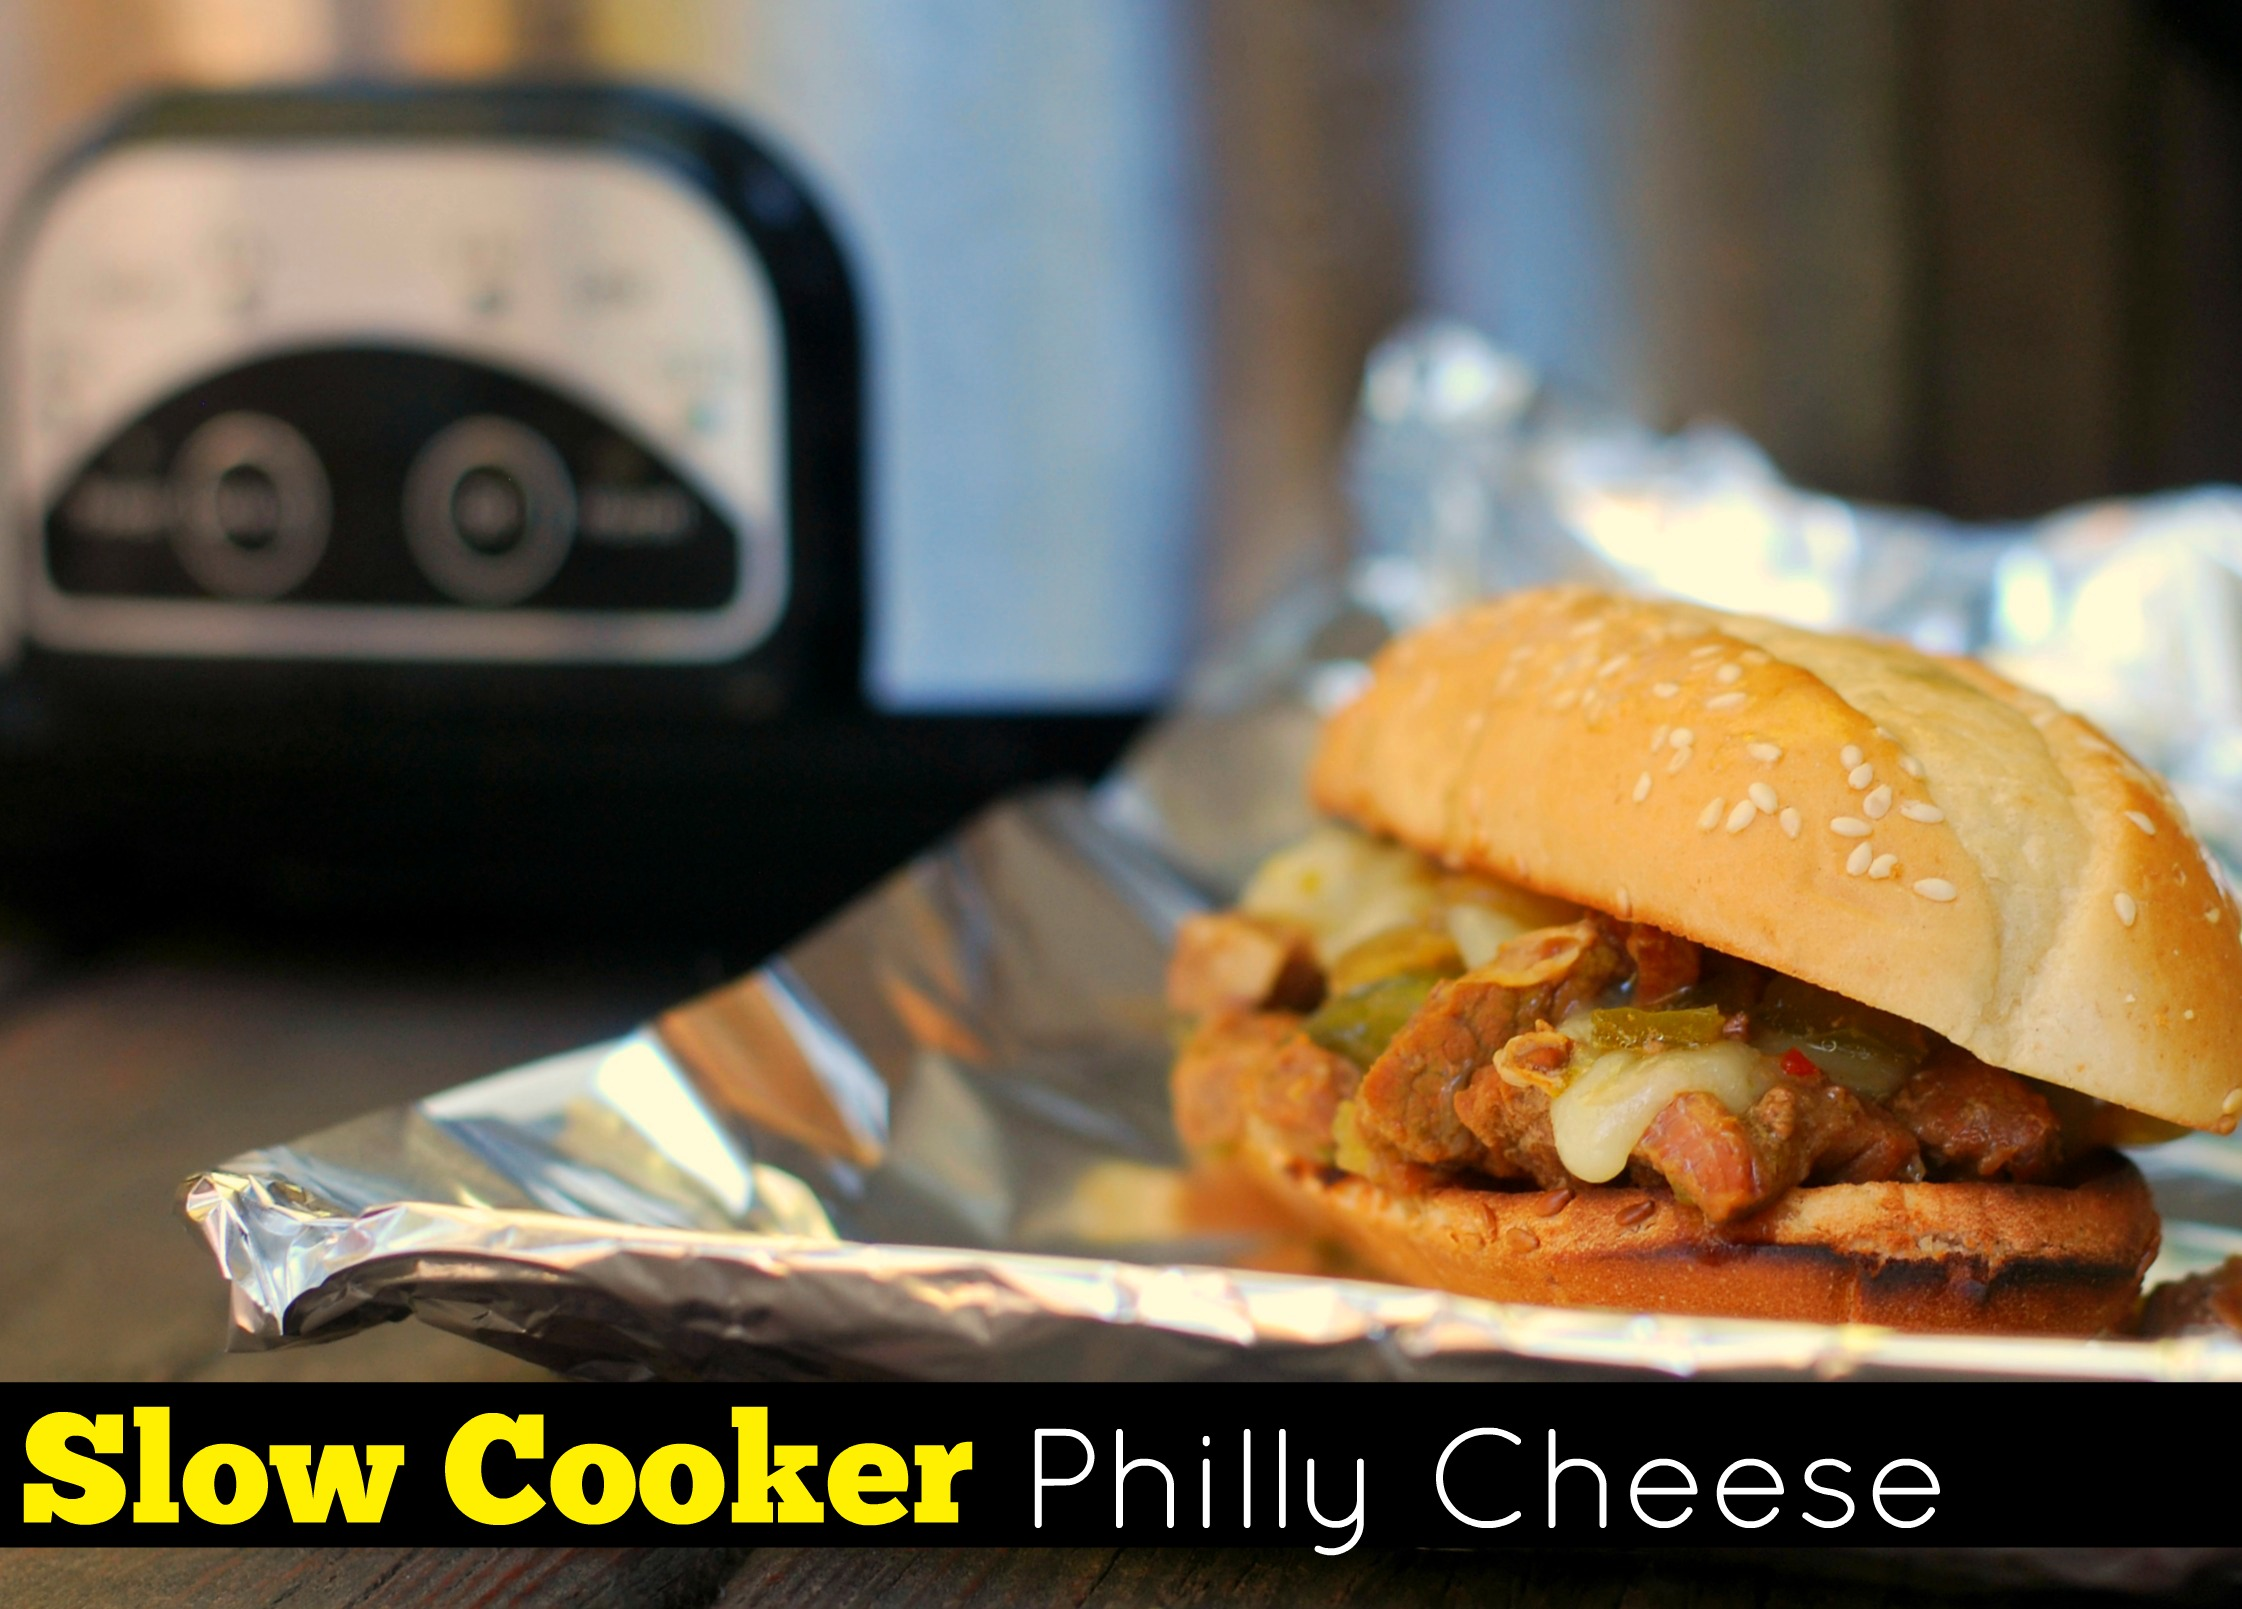 Slow Cooker Philly Cheese